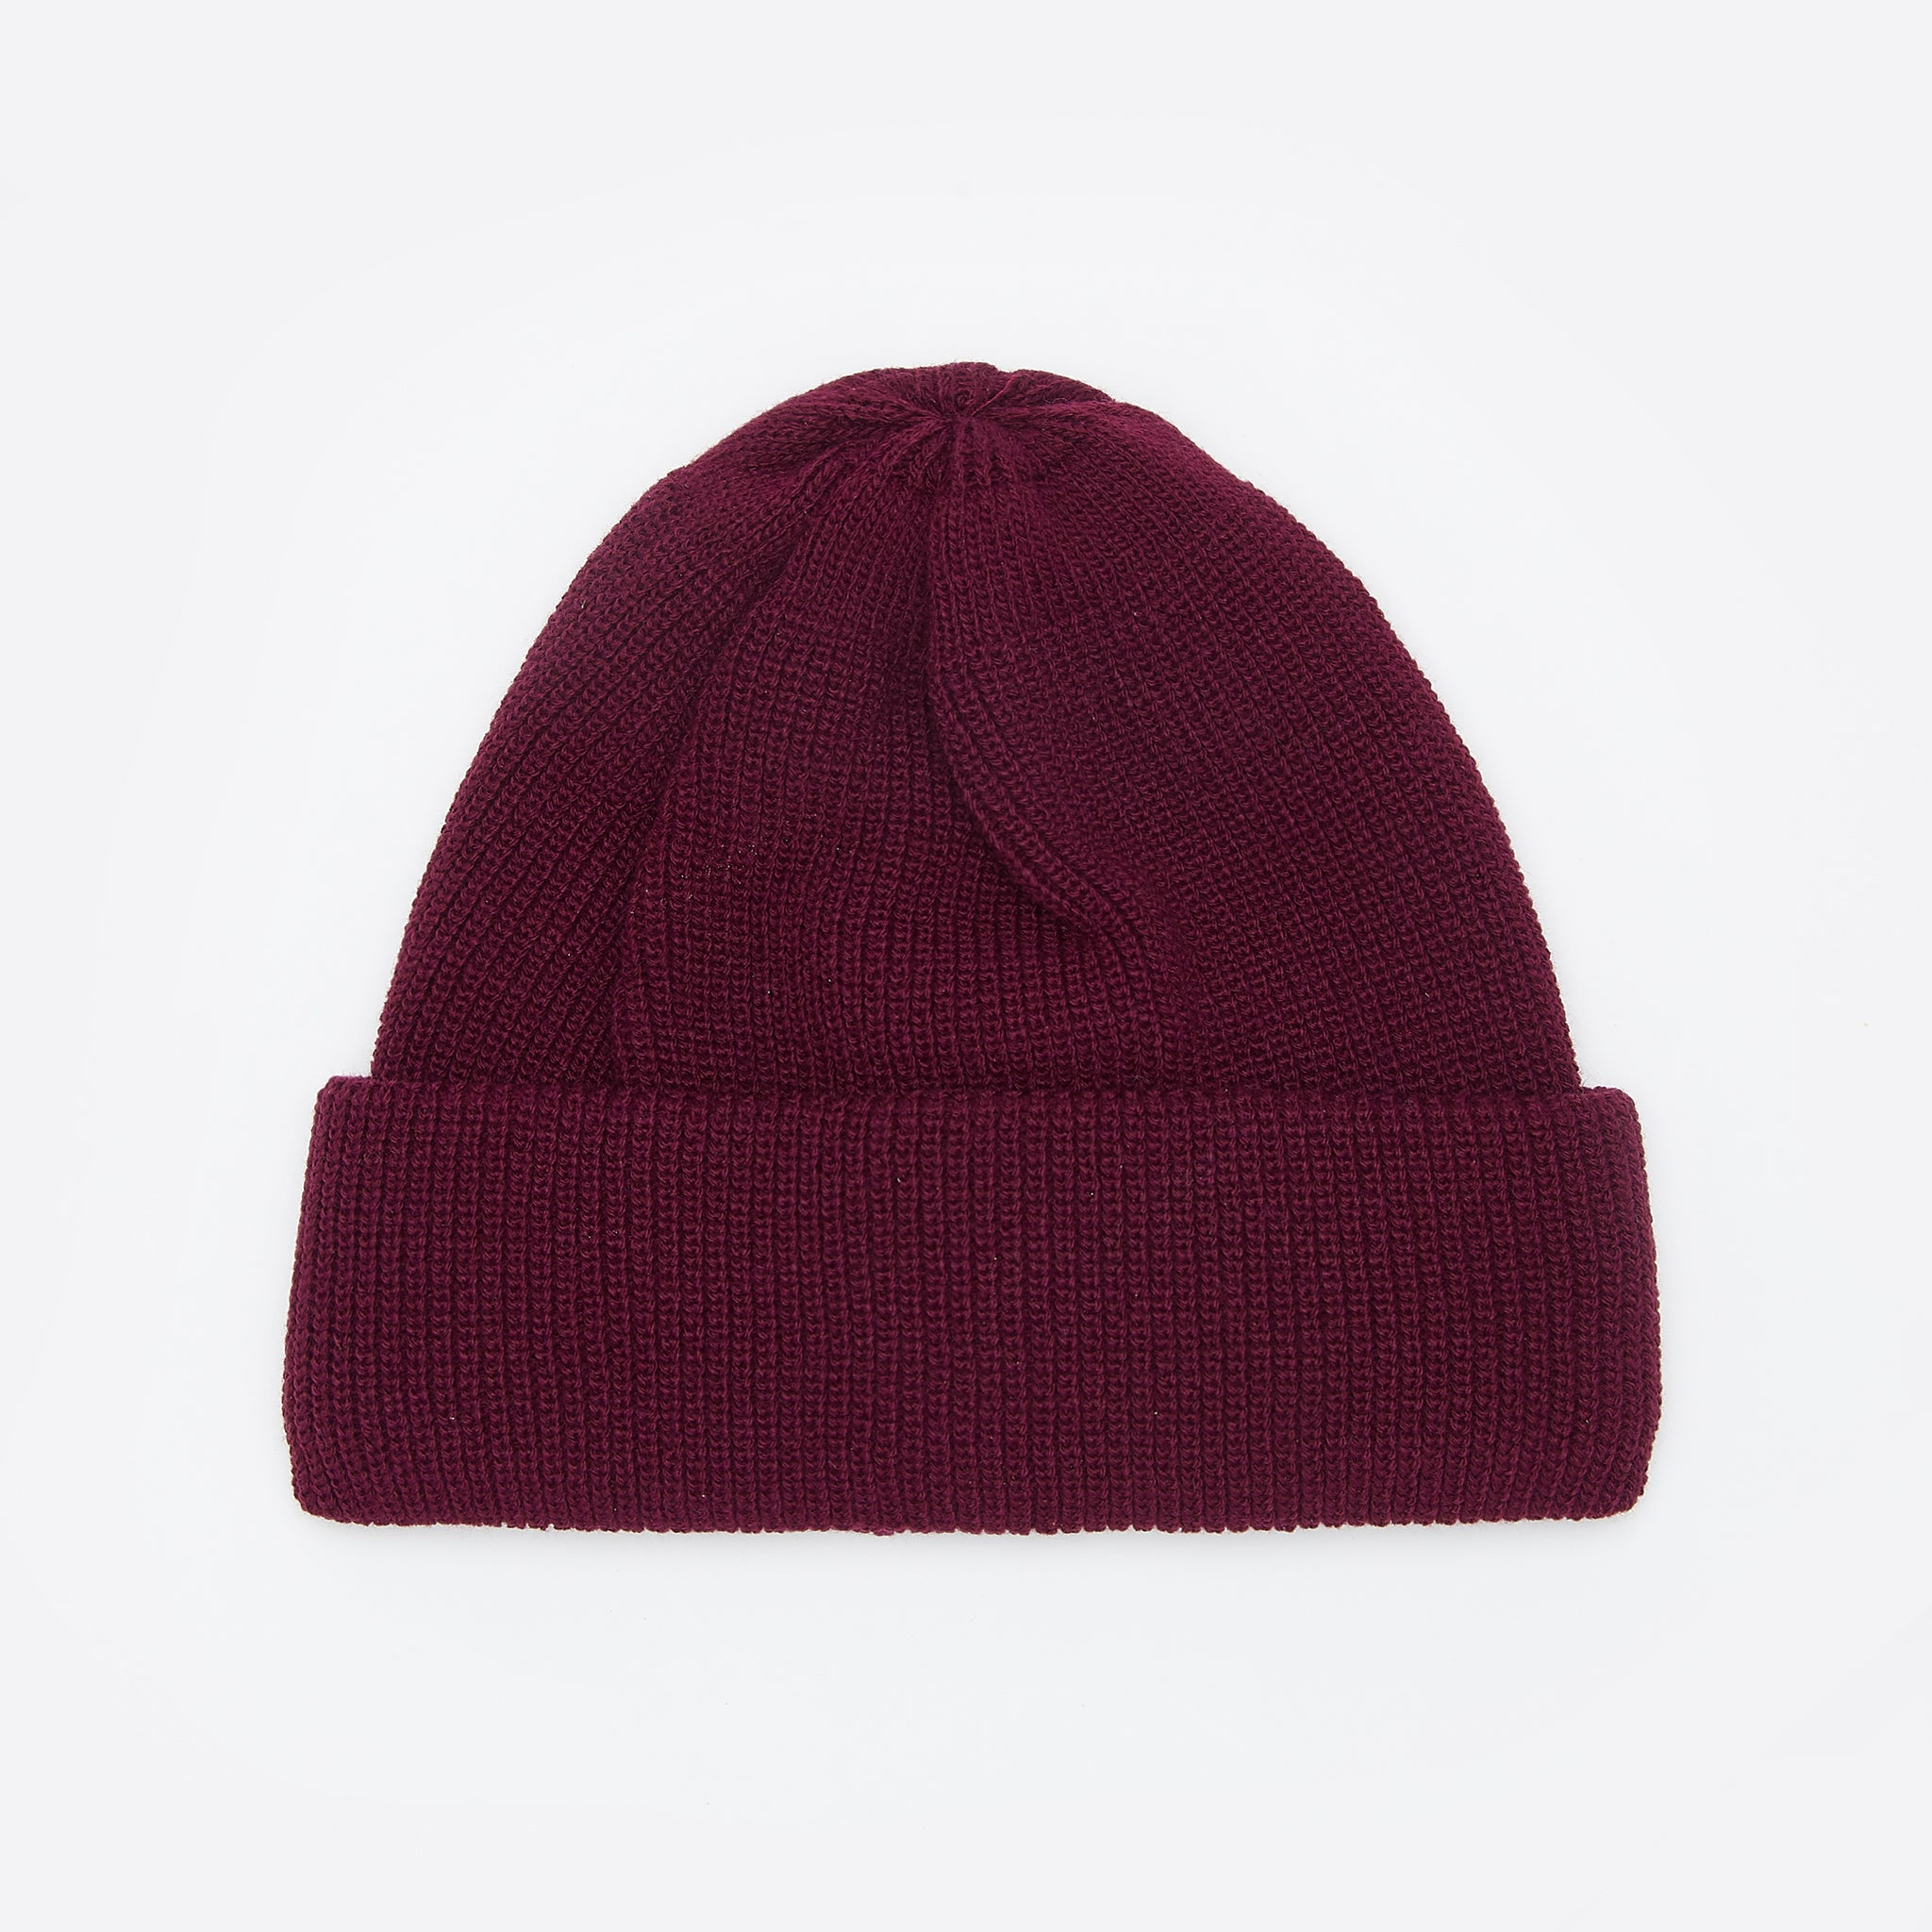 RoToTo Bulky Watch Cap in Burgundy